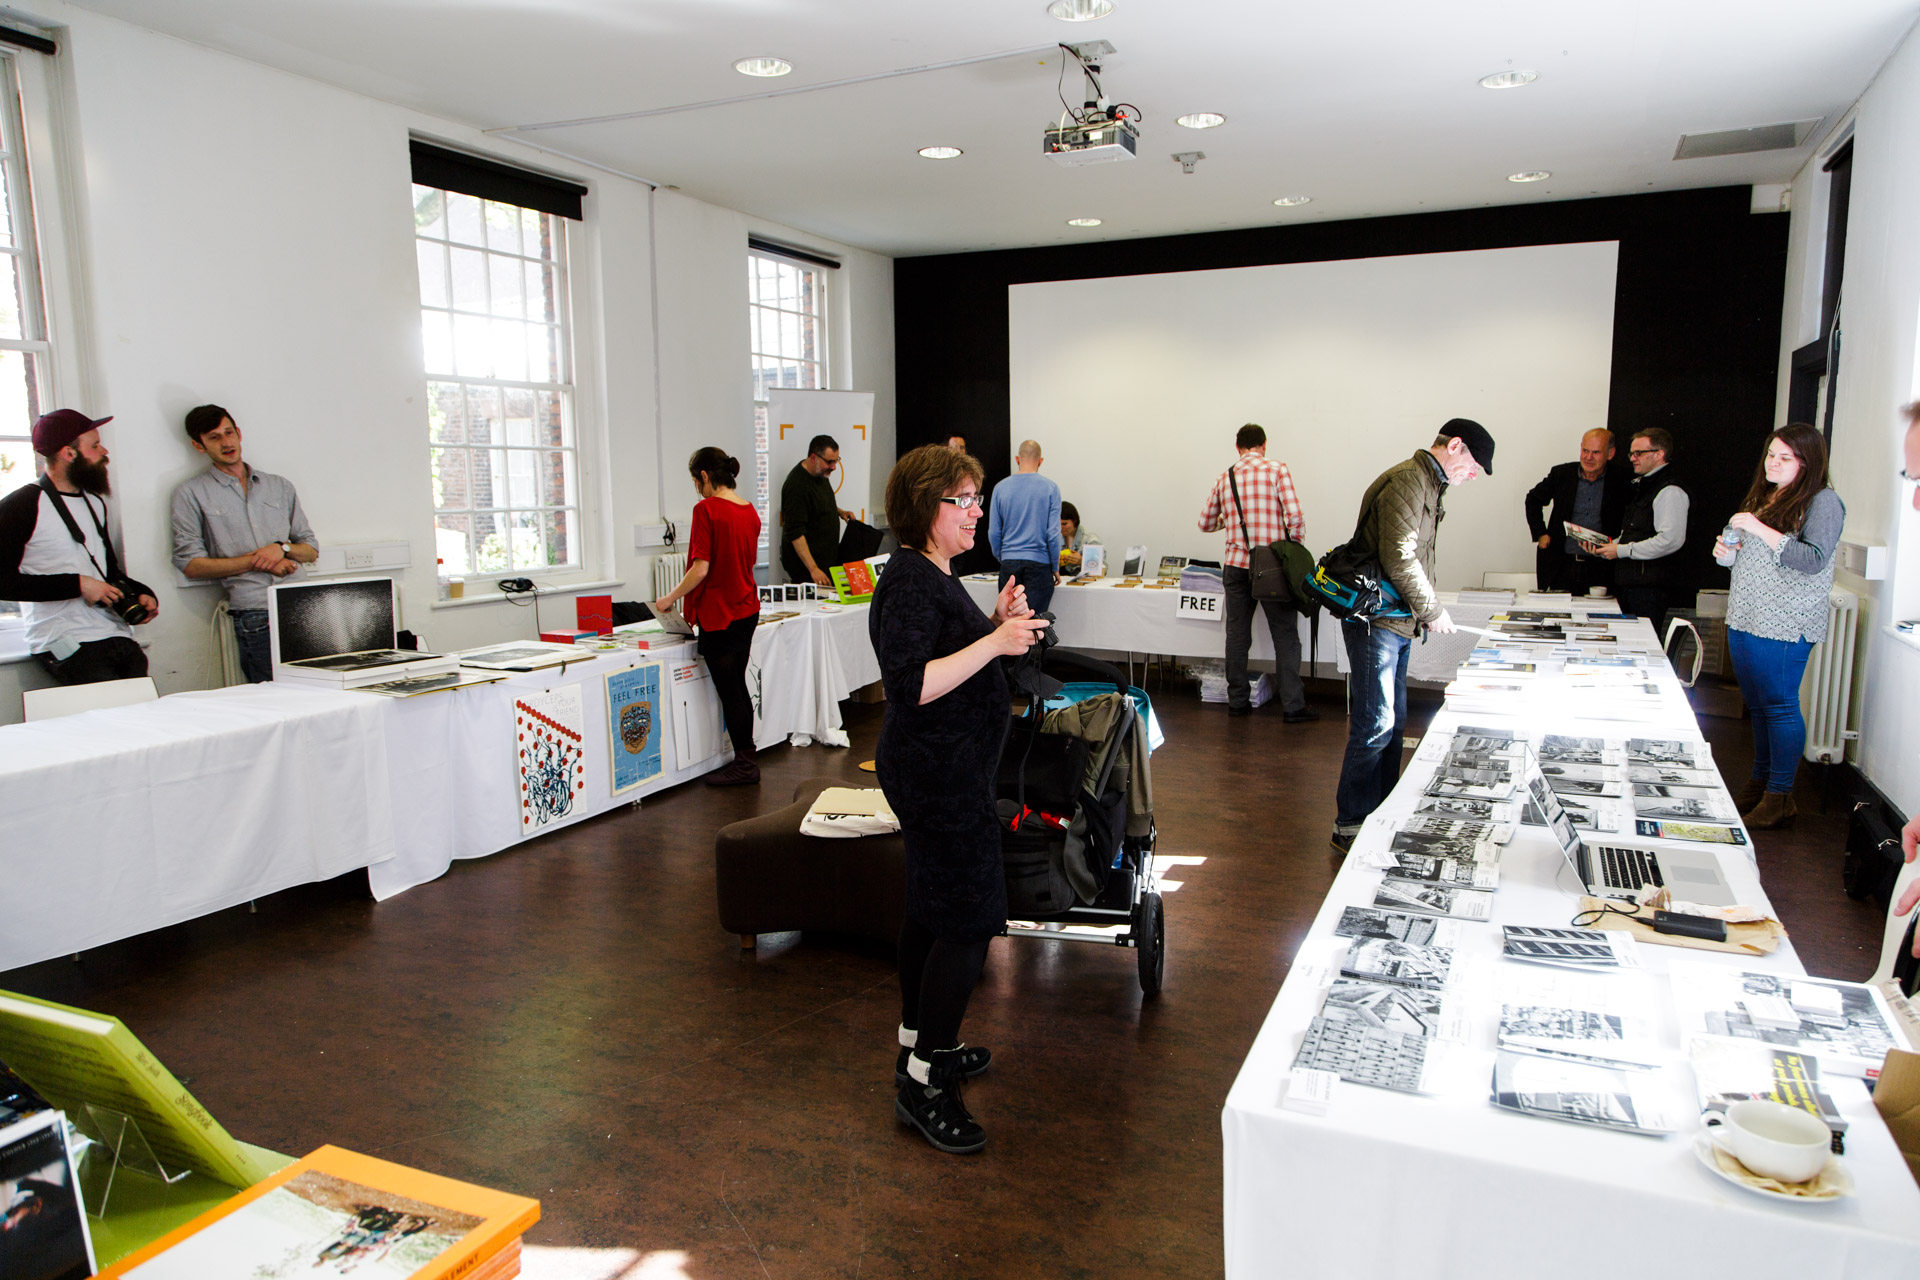 The Photobook Market was held at The Bluecoat by Schilt Publishing and hosted a variety of book publishers and books.